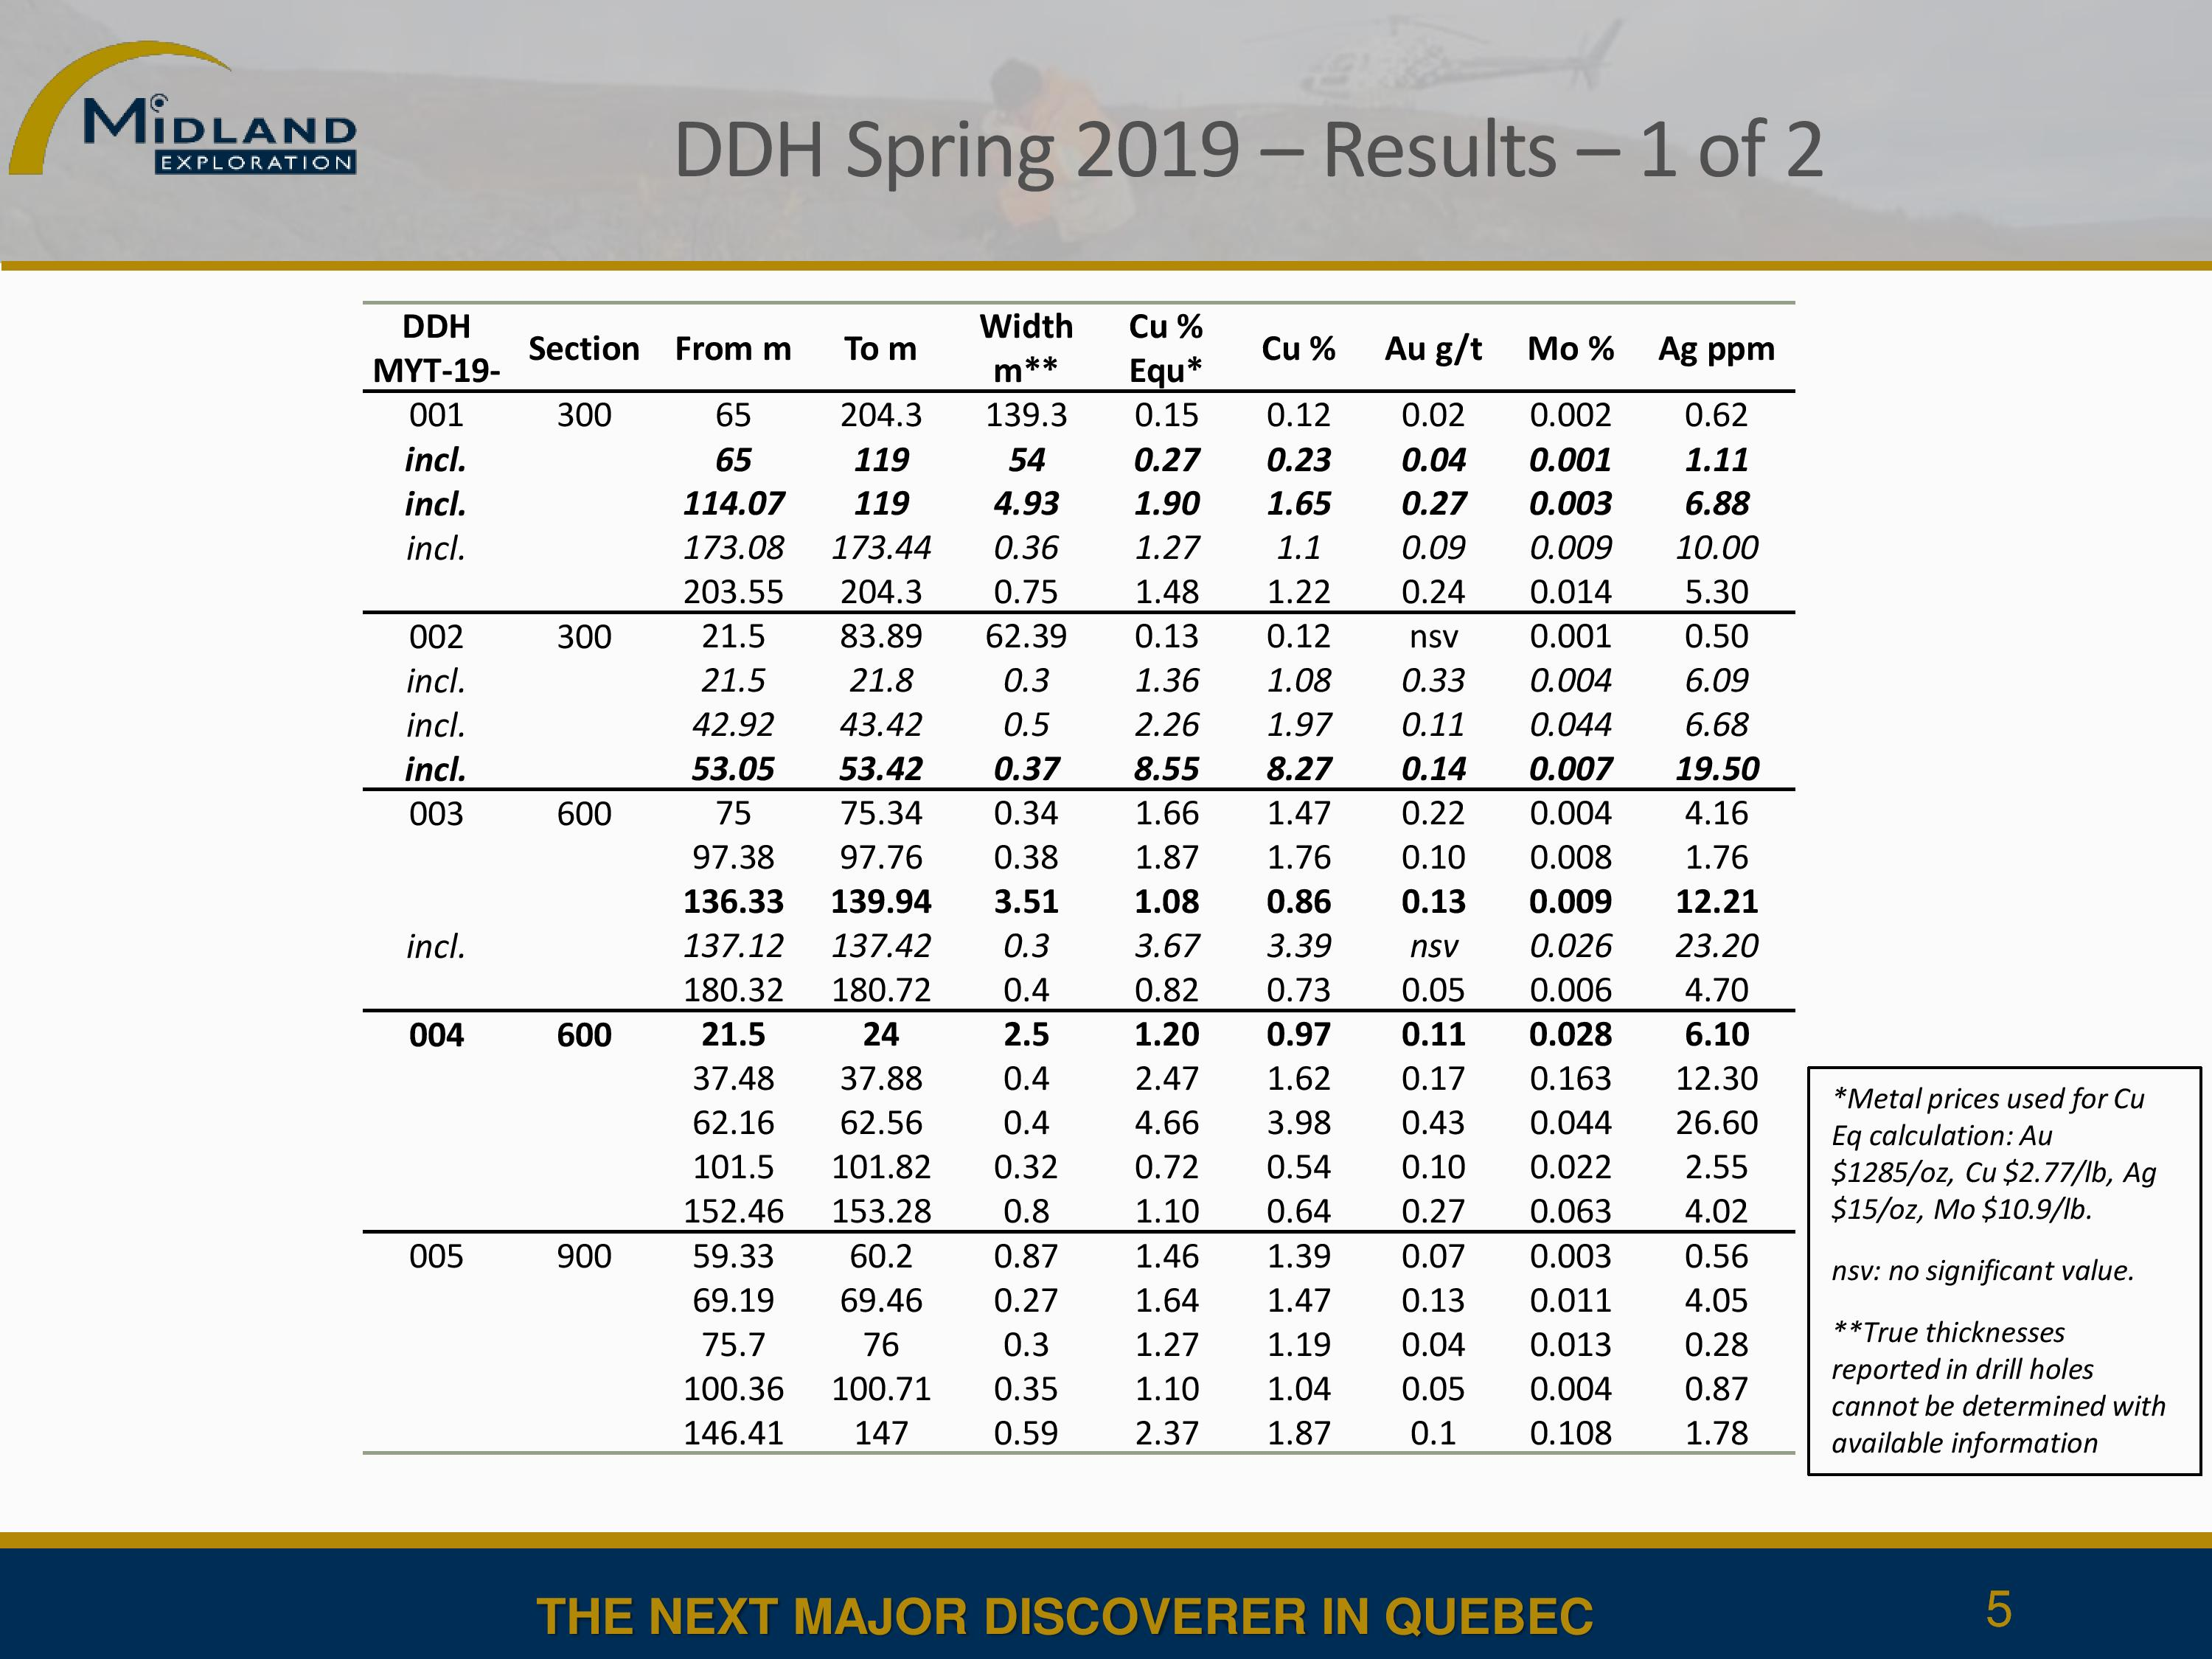 Detailed drilling results - 1 of 2